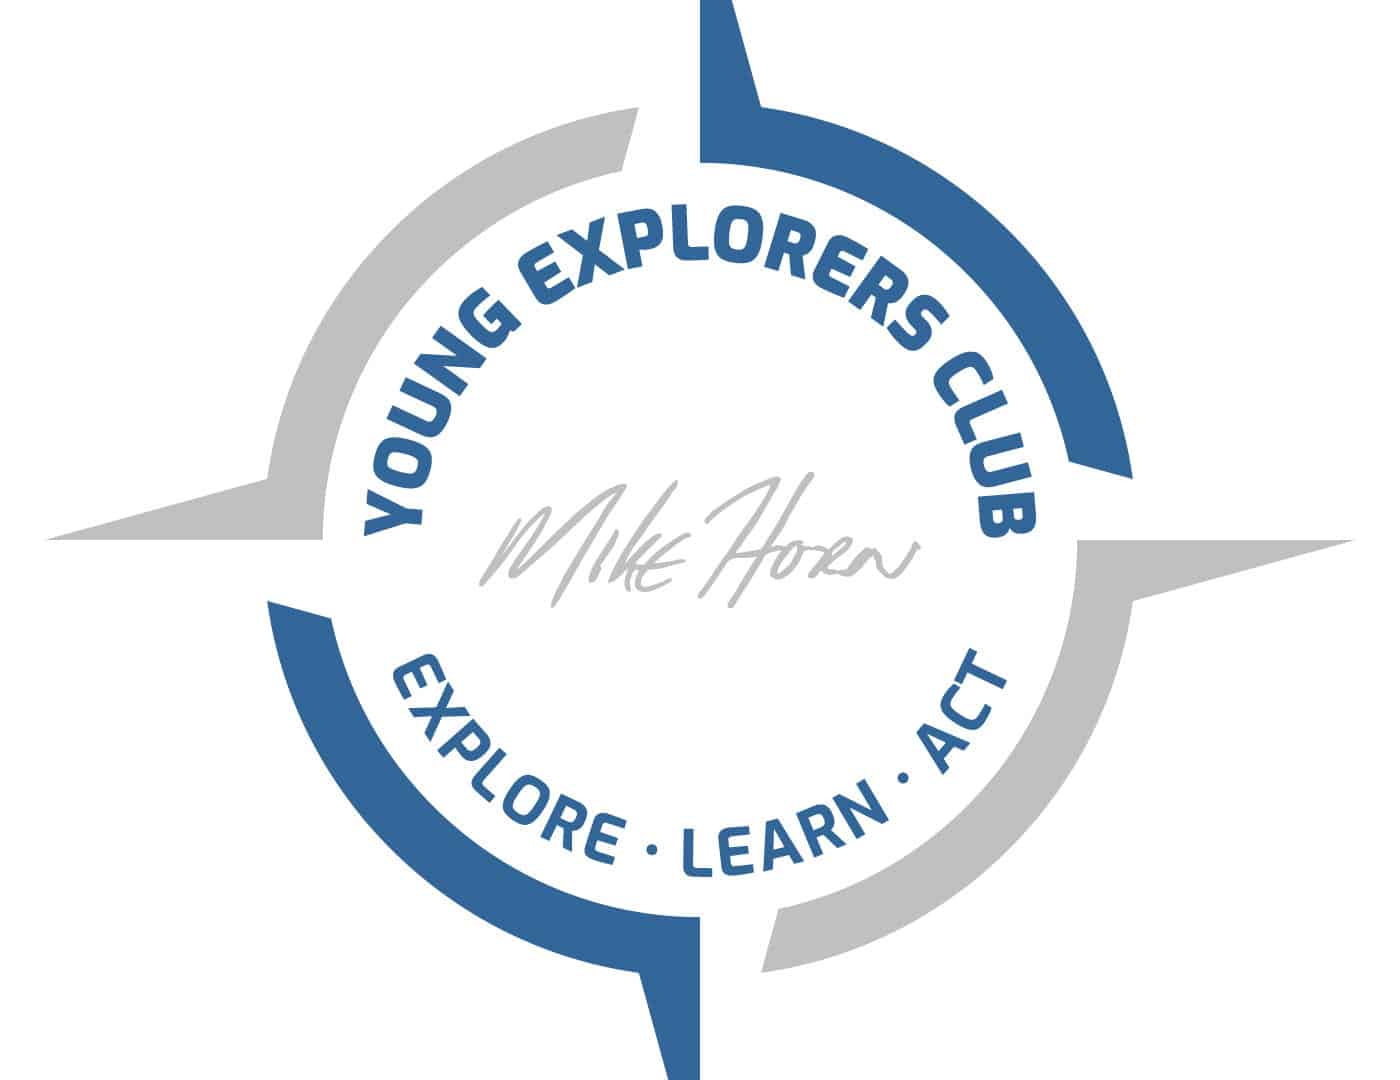 Young Explorers Club